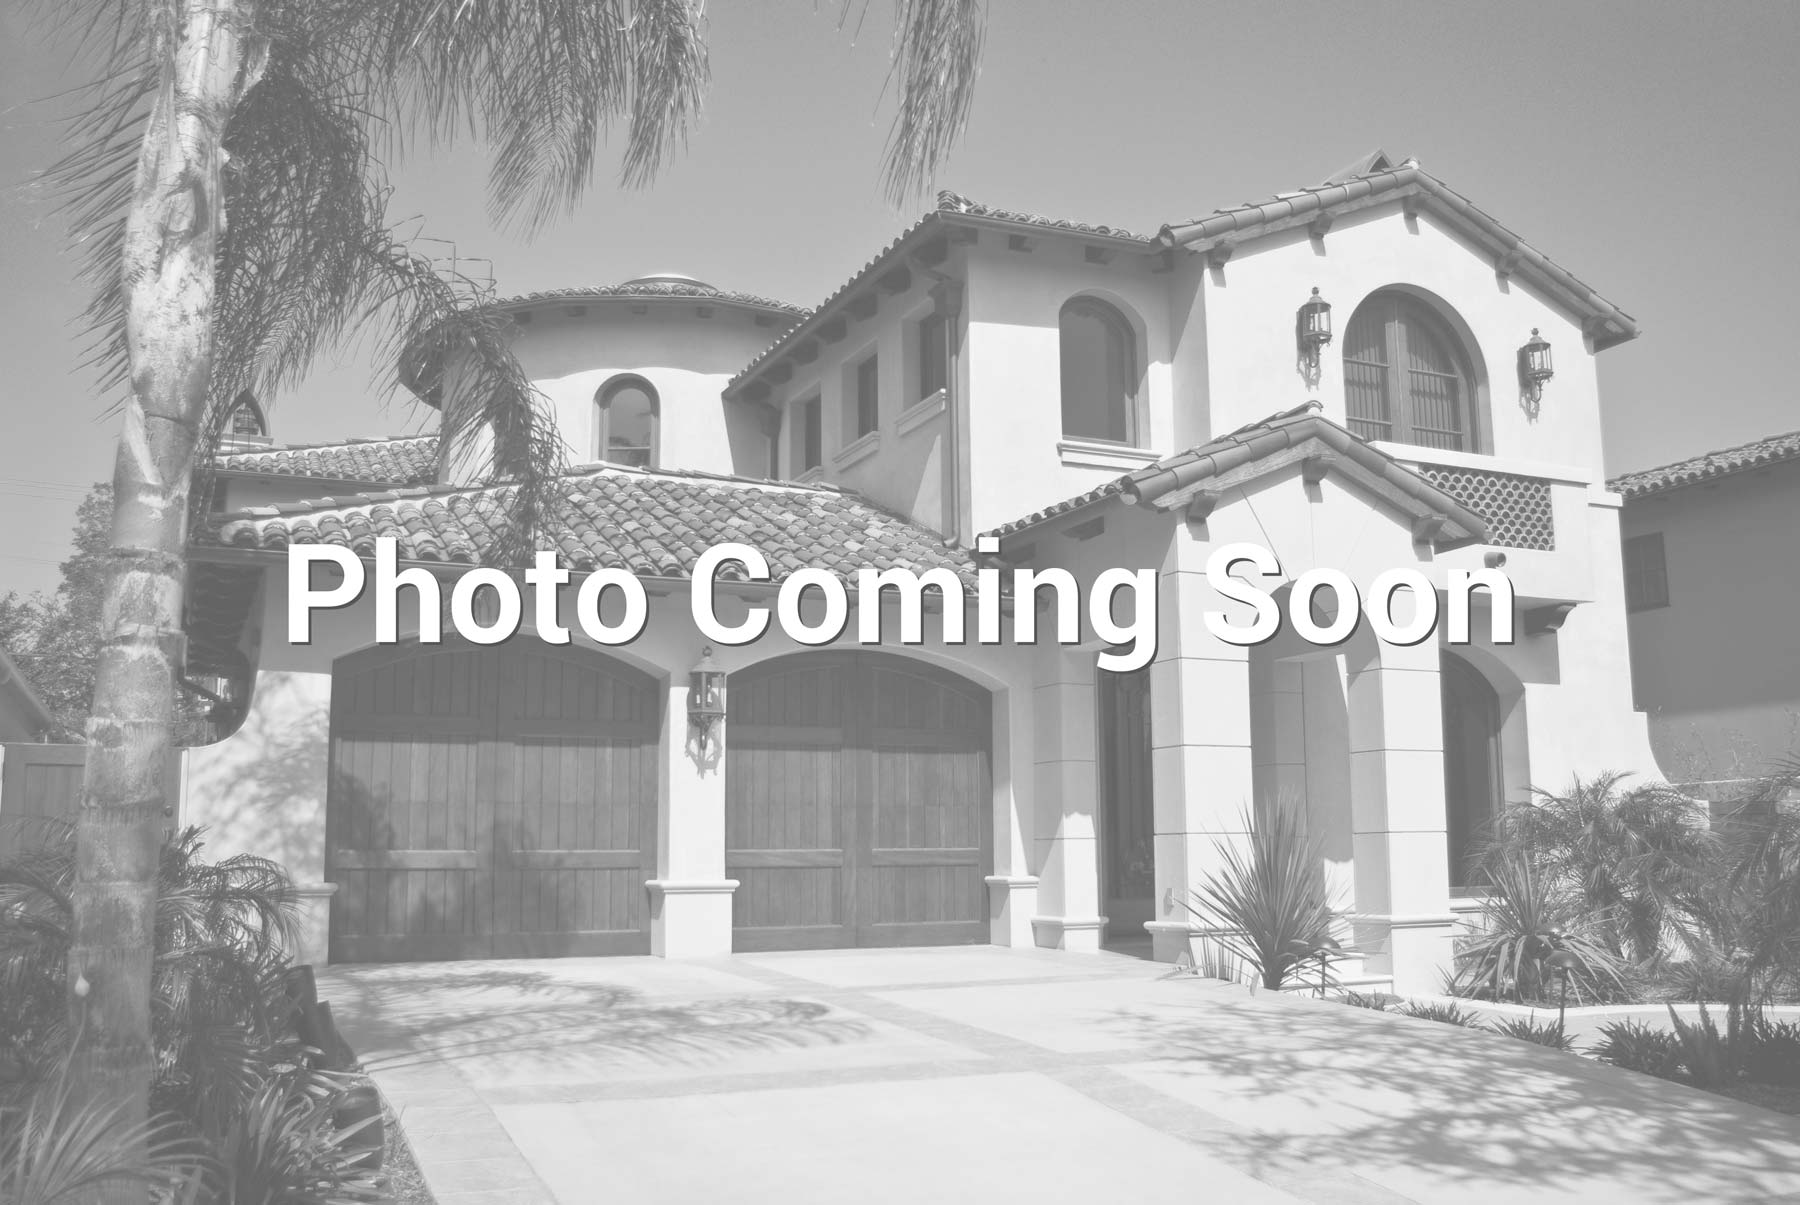 $899,000 - 4Br/3Ba -  for Sale in Imperial Beach, Imperial Beach